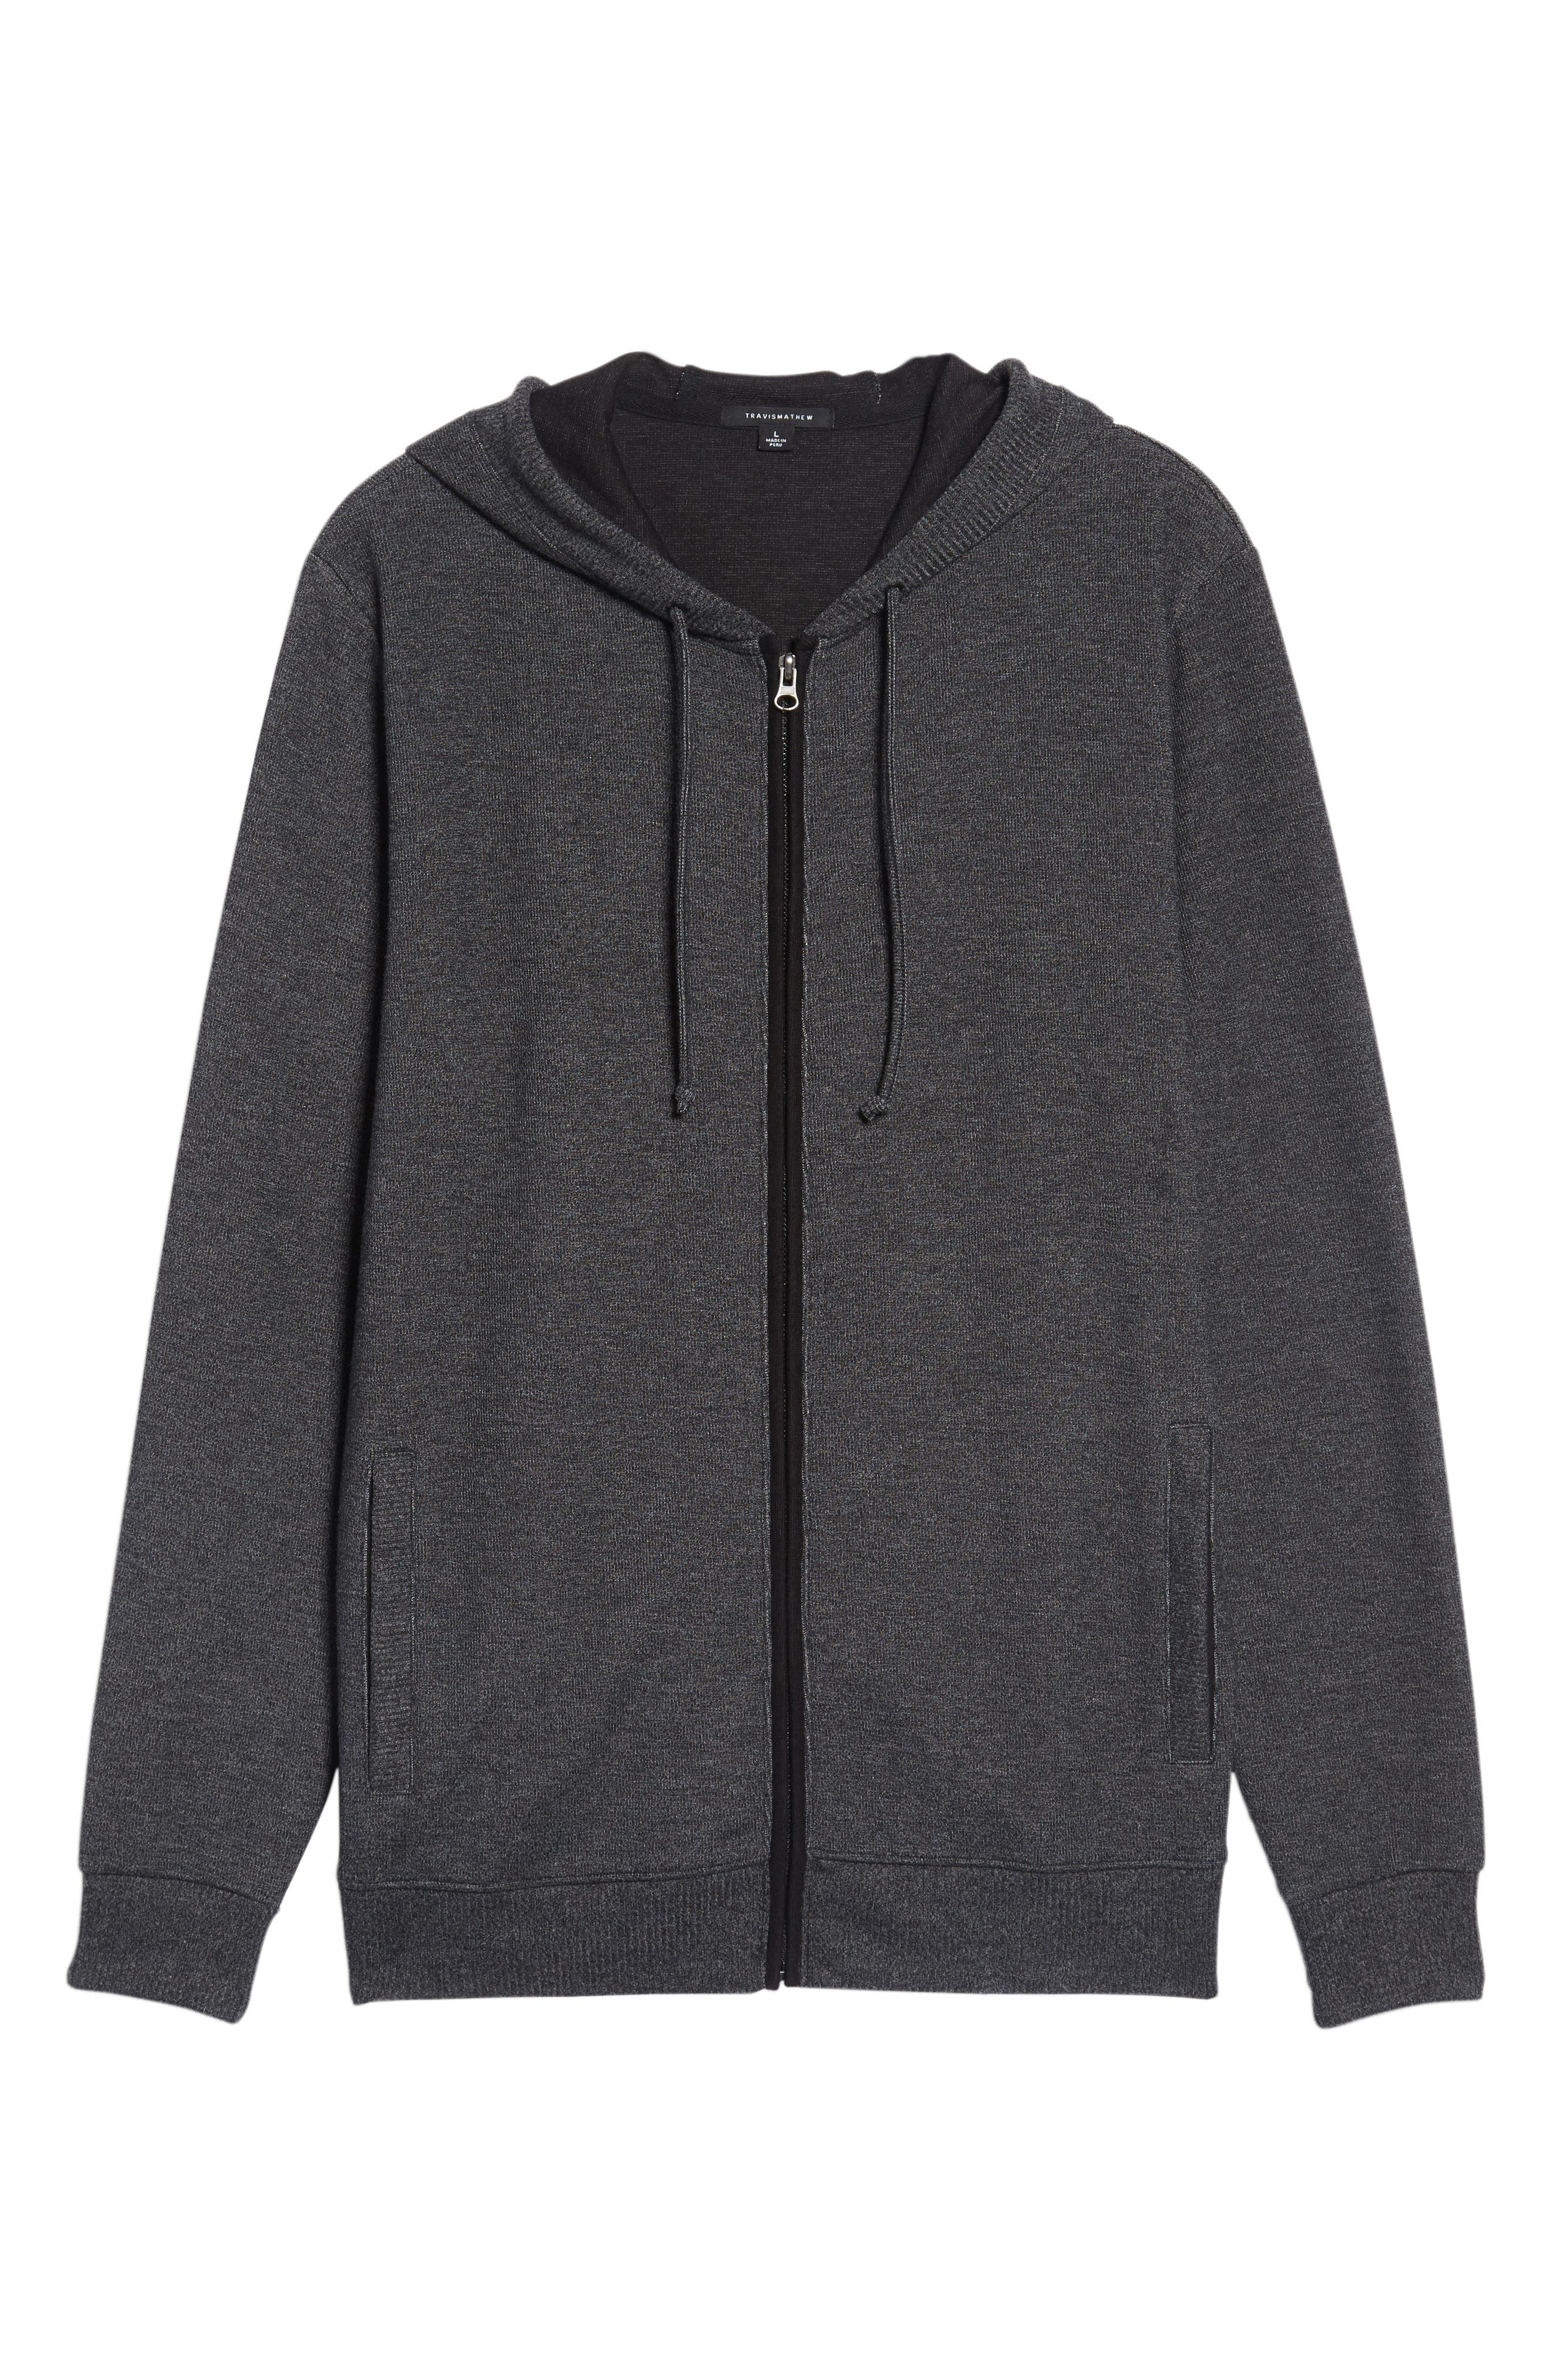 Snare Zip Front Hooded Cardigan,                             Alternate thumbnail 6, color,                             Black